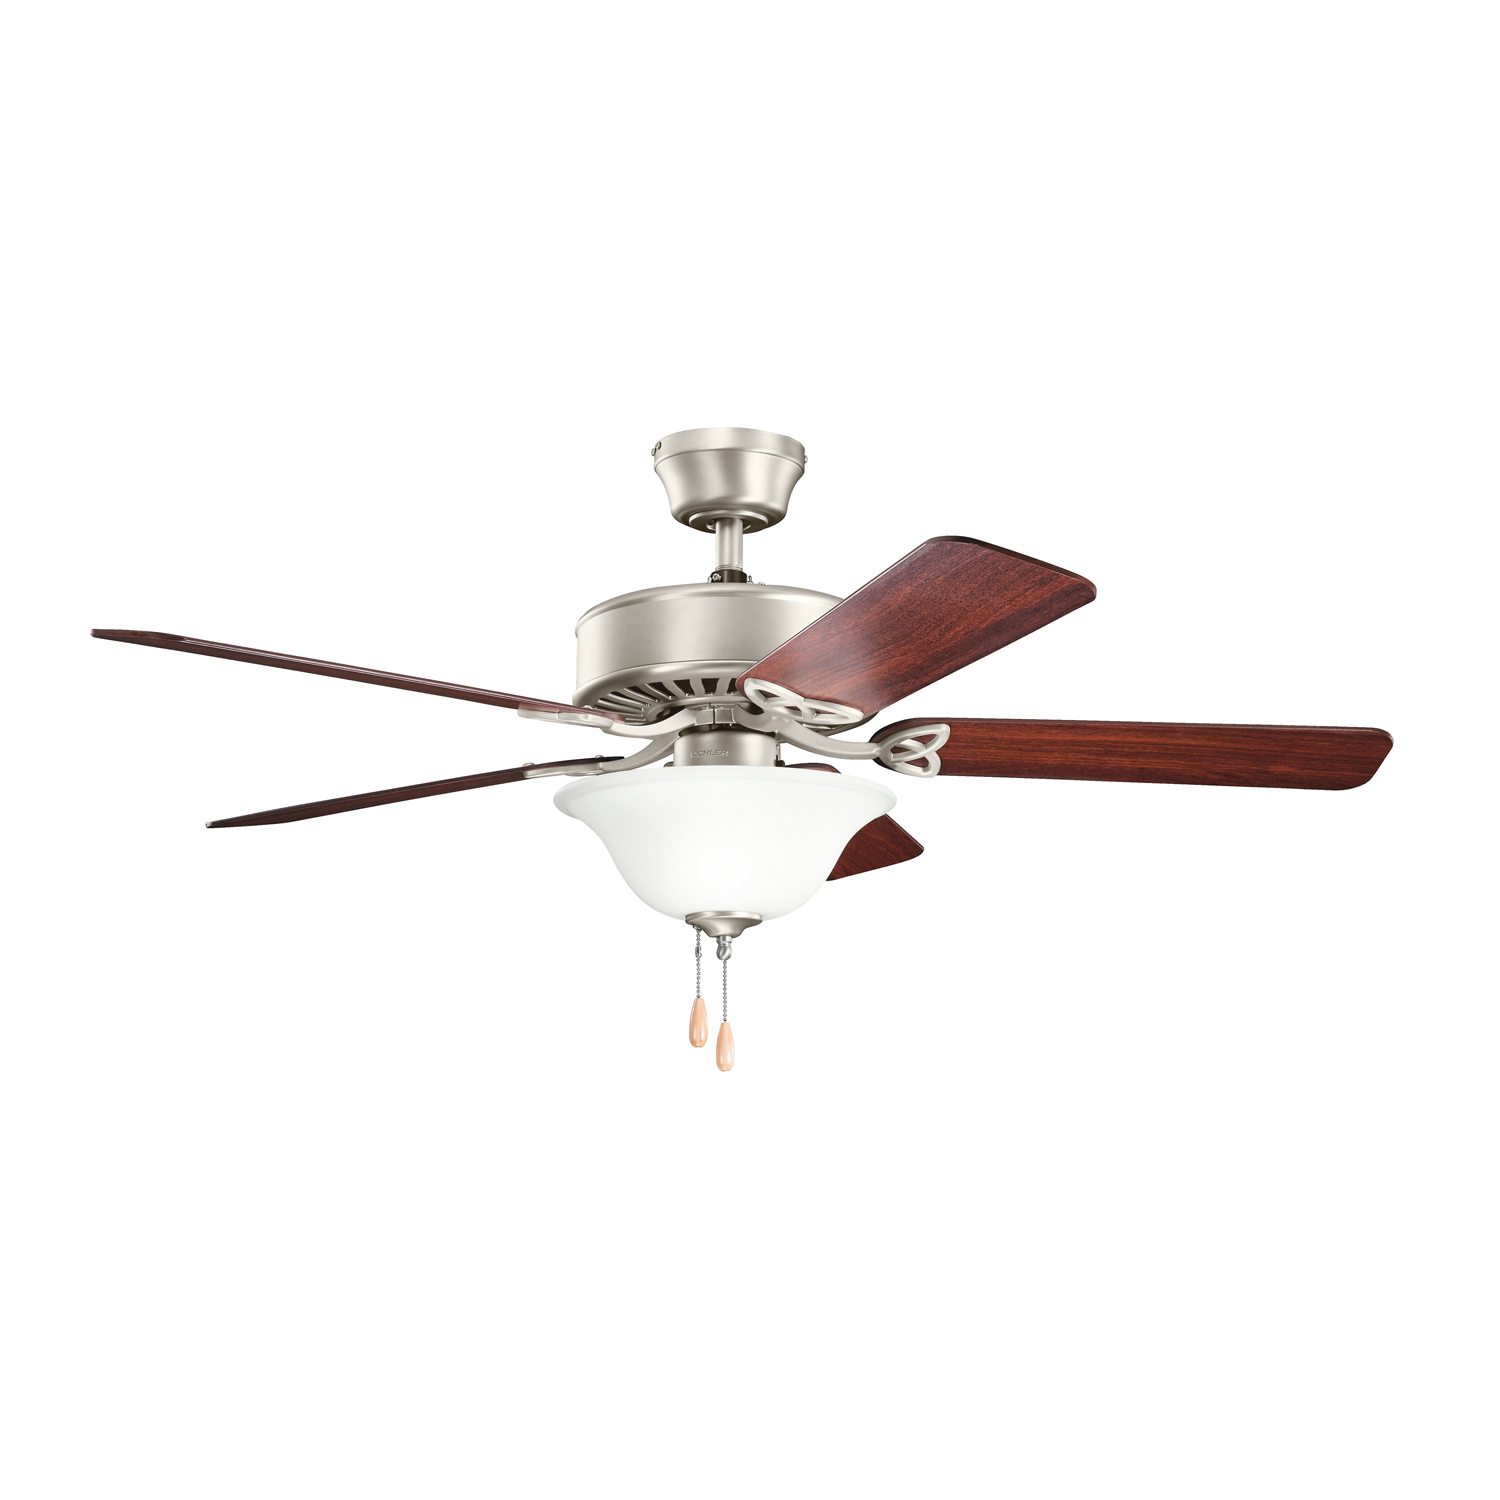 50 inchCeiling Fan from the ES collection by Kichler 330103NI